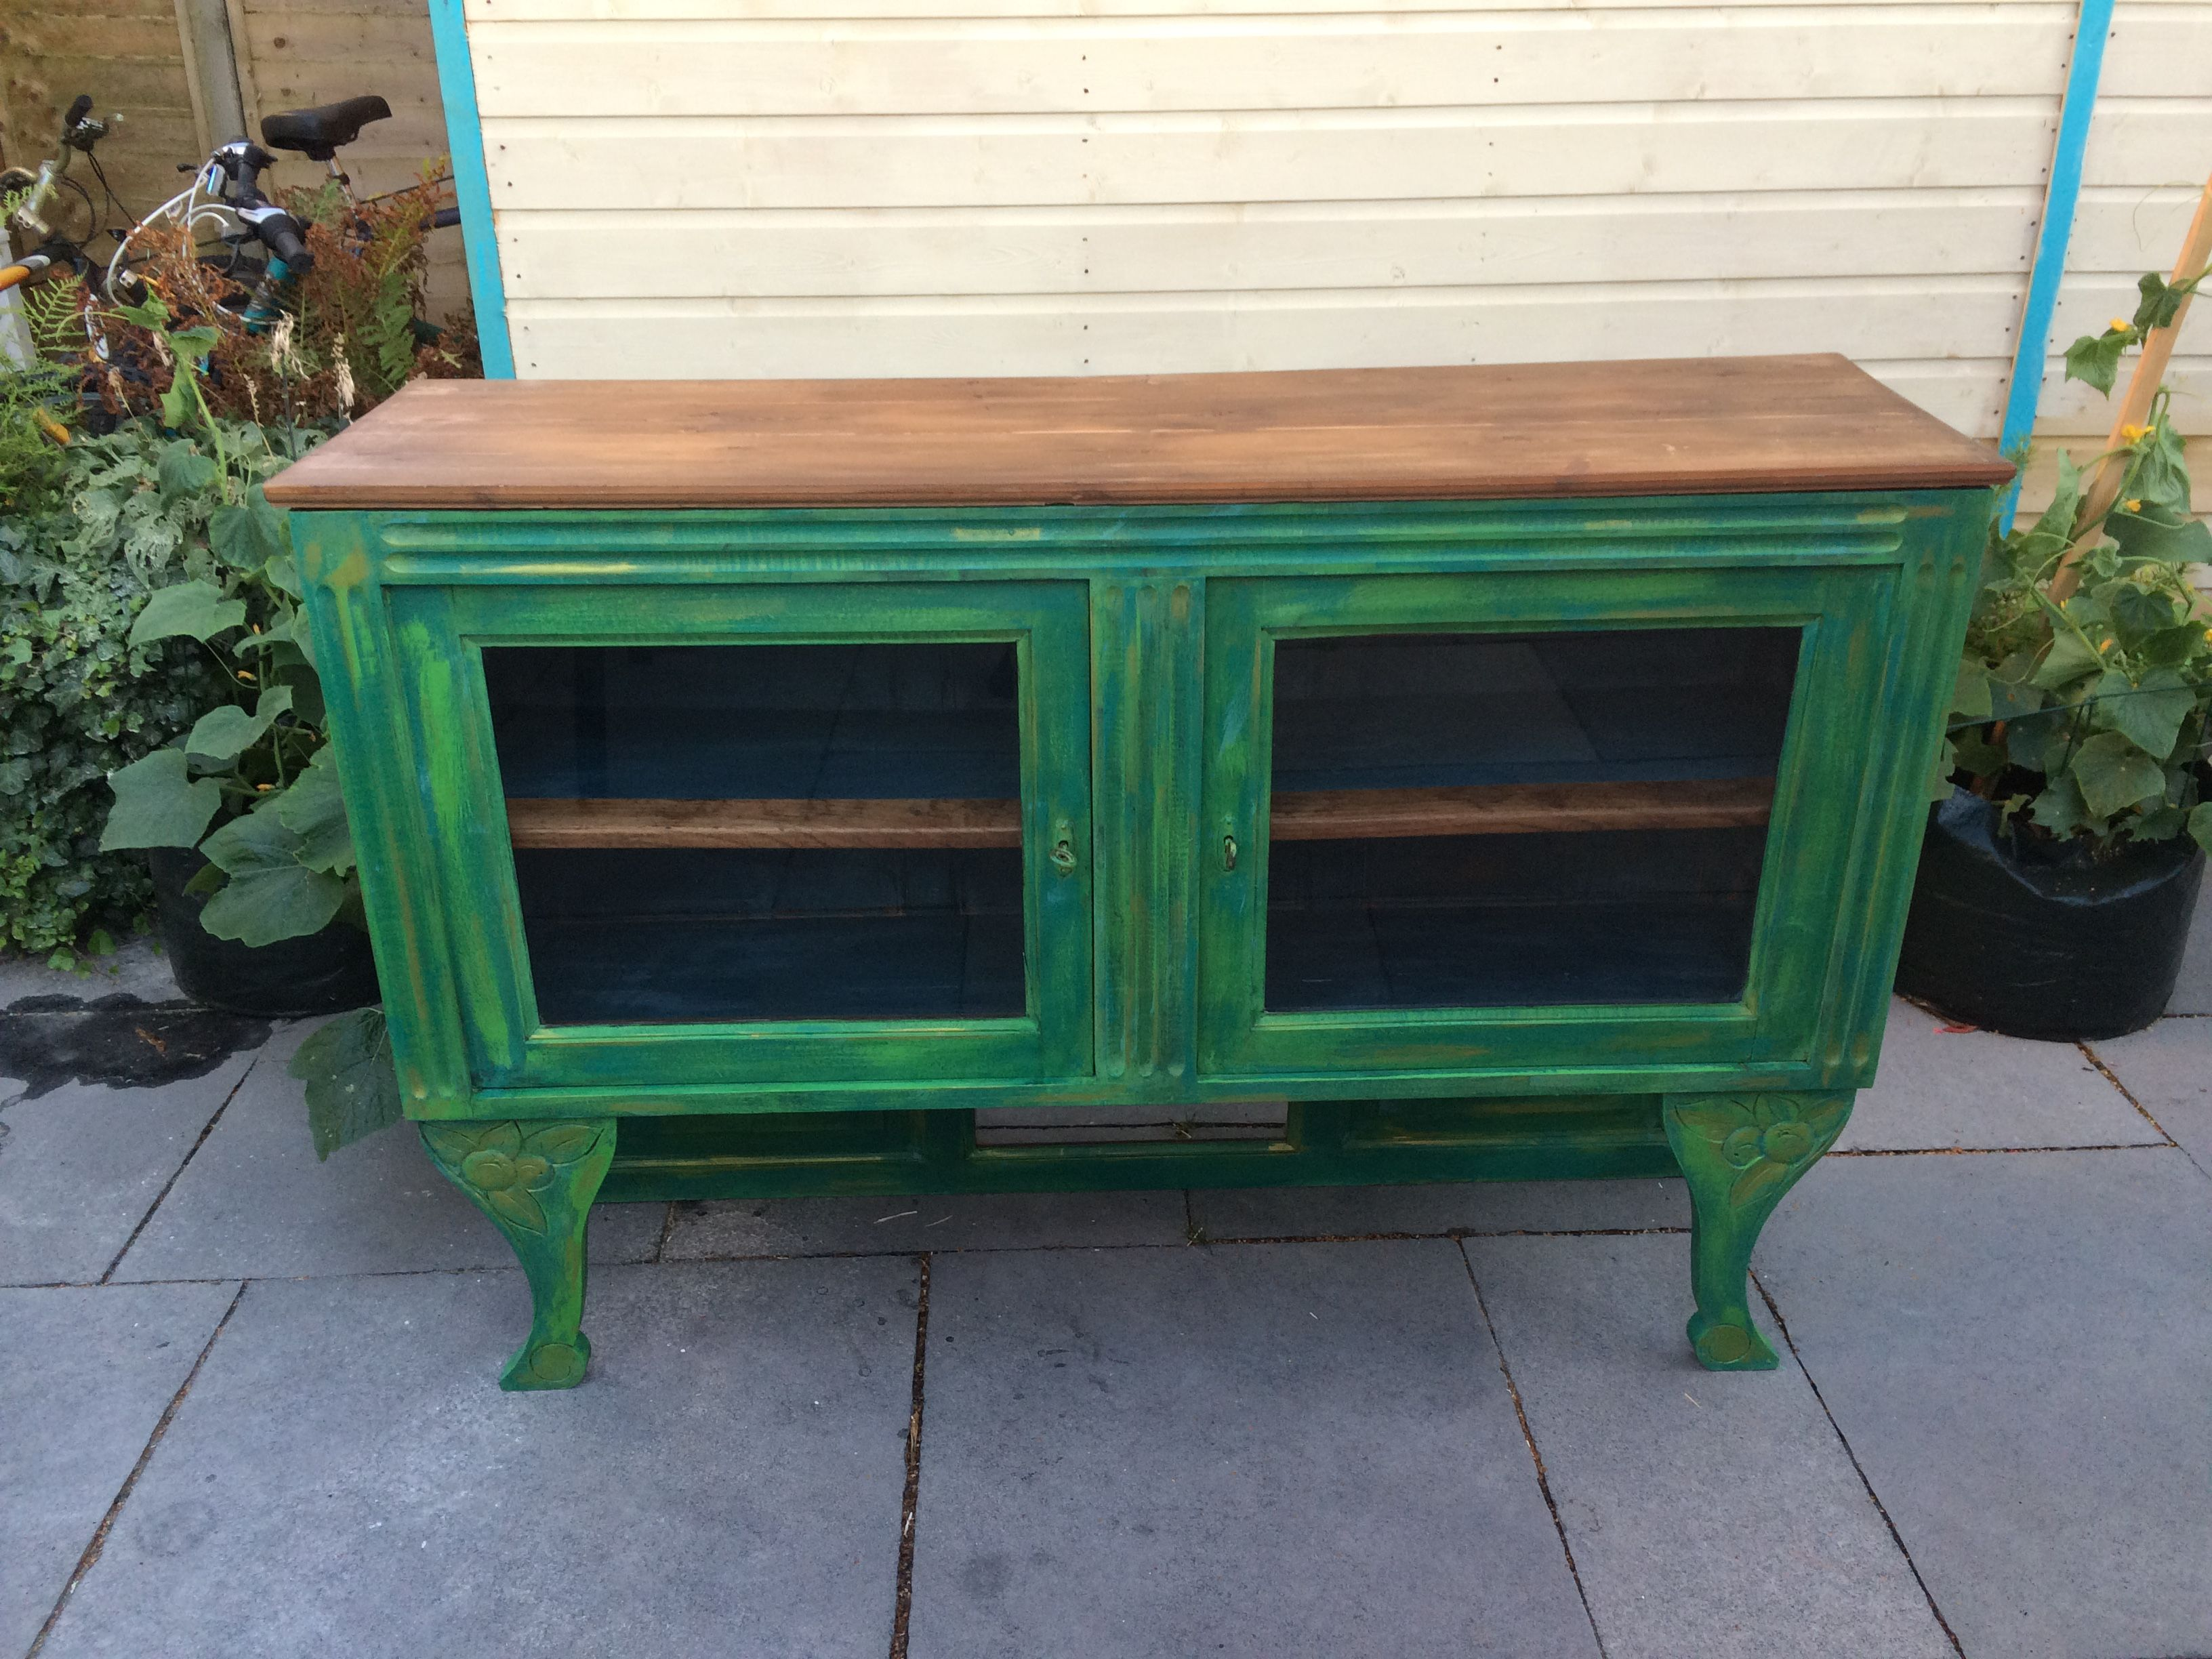 Antique French sideboard; painted Annie Sloane Antibes Green, Florence with green metallic wax and clear wax | refurbished by Ellie Pea Furniture - https://www.facebook.com/ElliePeaFurniture/